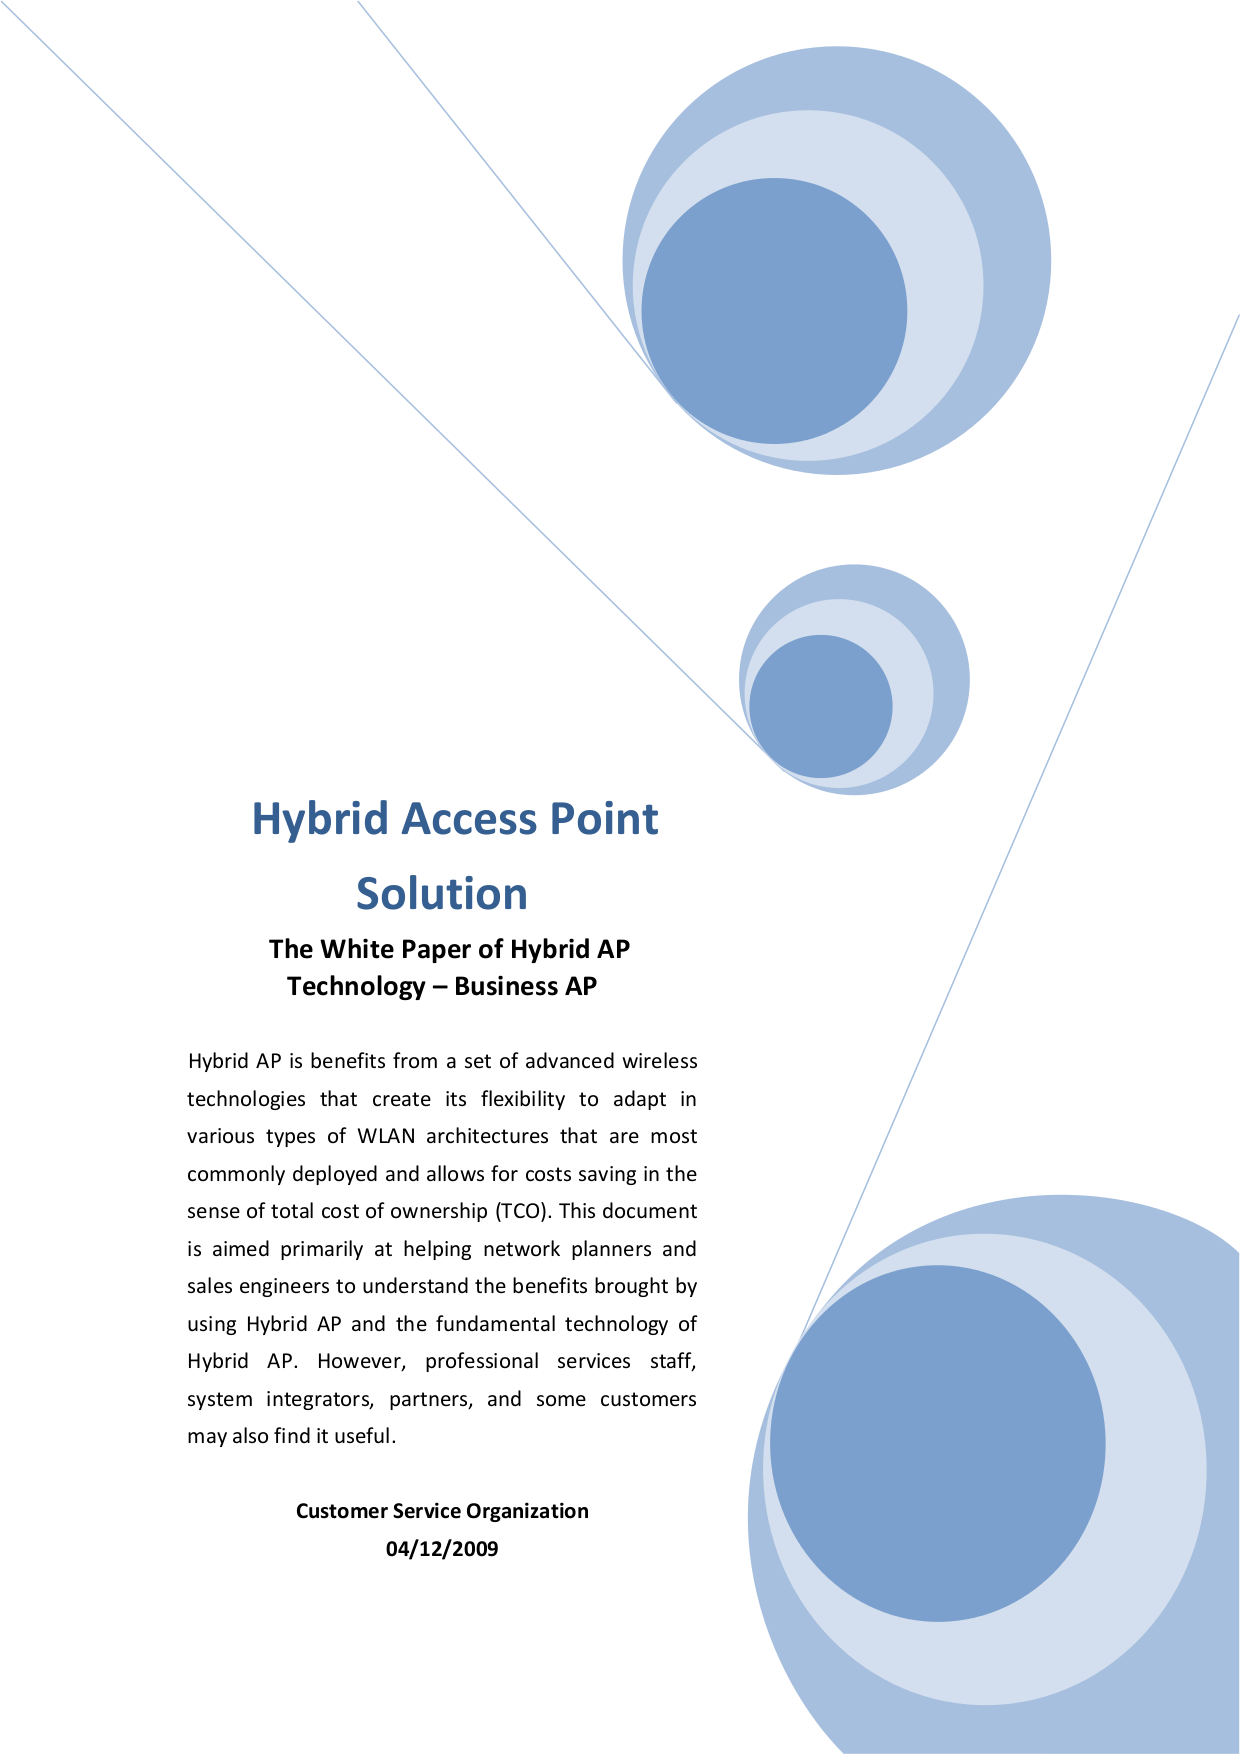 Download free pdf for zyxel nwa 3163 access point other manual pdf for zyxel other nwa 3163 access point manual sciox Choice Image